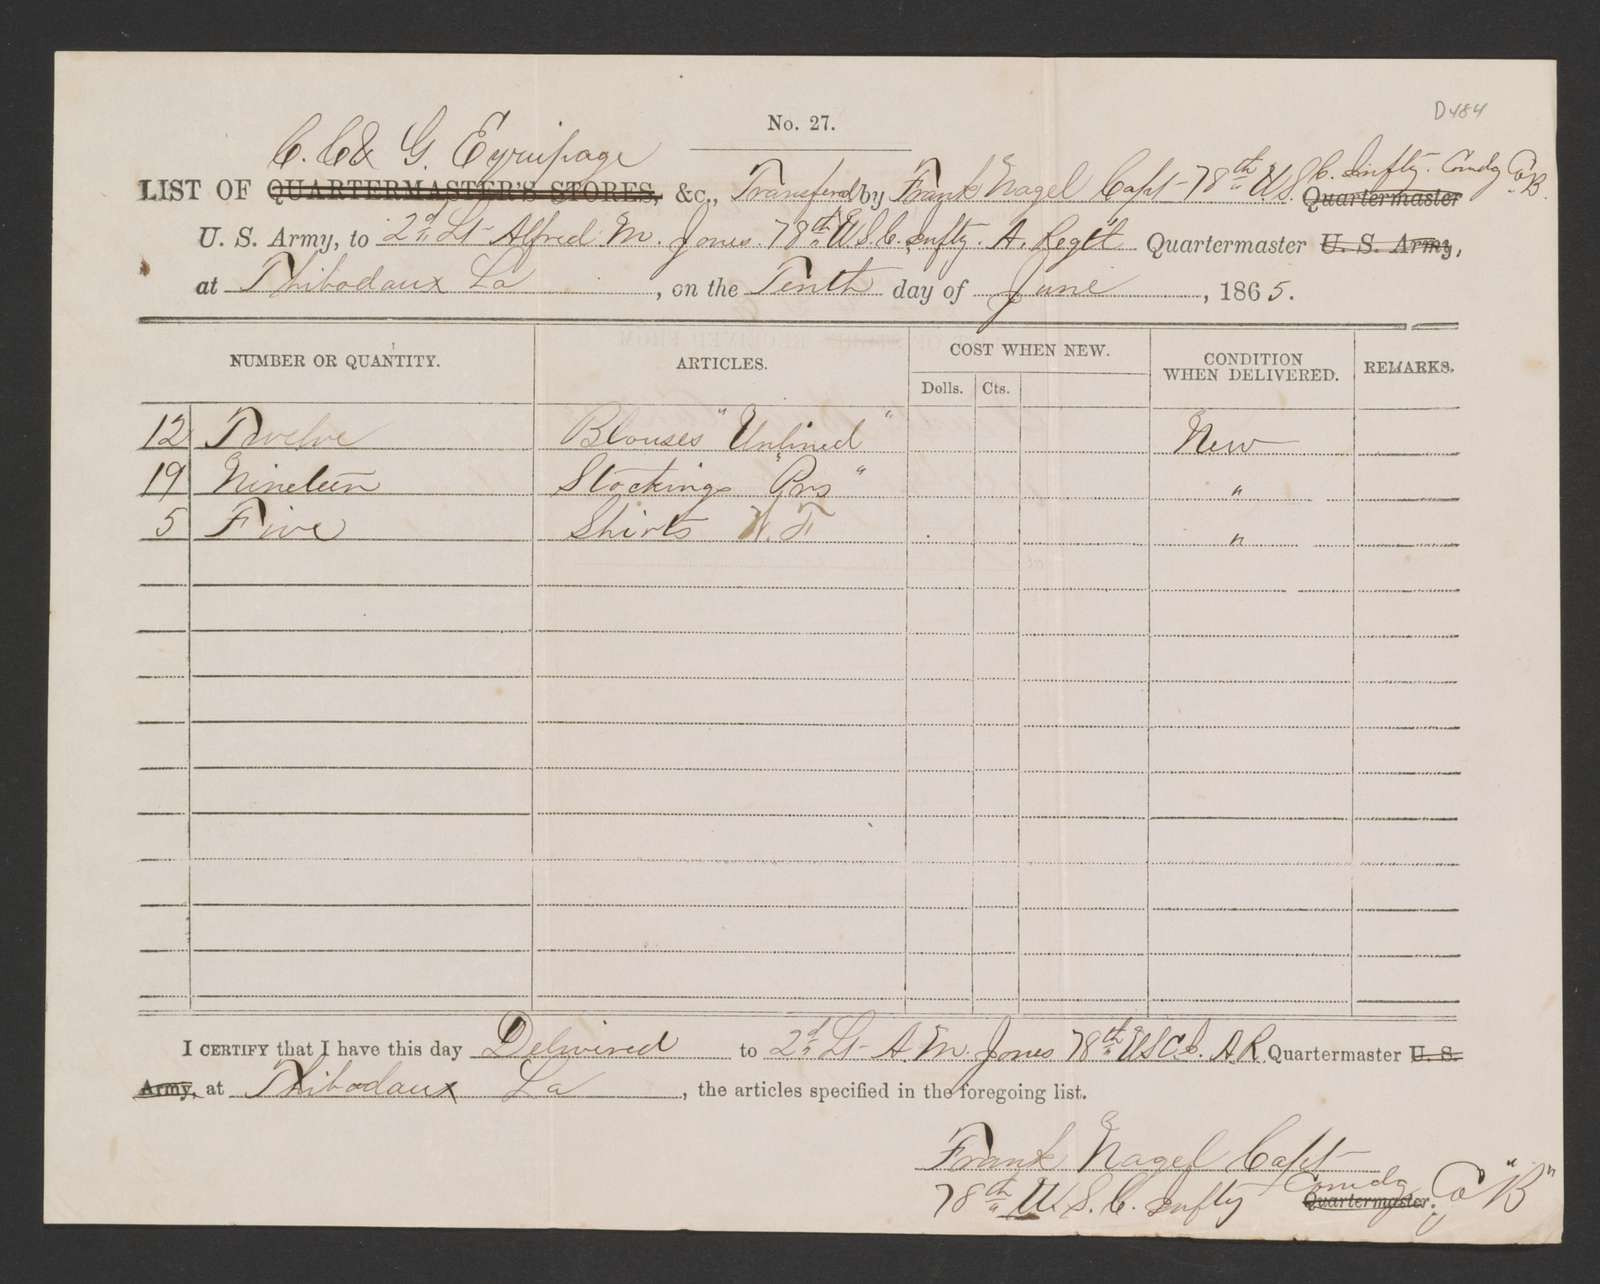 William A. Gladstone Afro-American Military Collection: New clothing requisition, 78th United States Colored Infantry, Captain Frank Nagel, Company B, Thibidaux, La., 10 June 1865